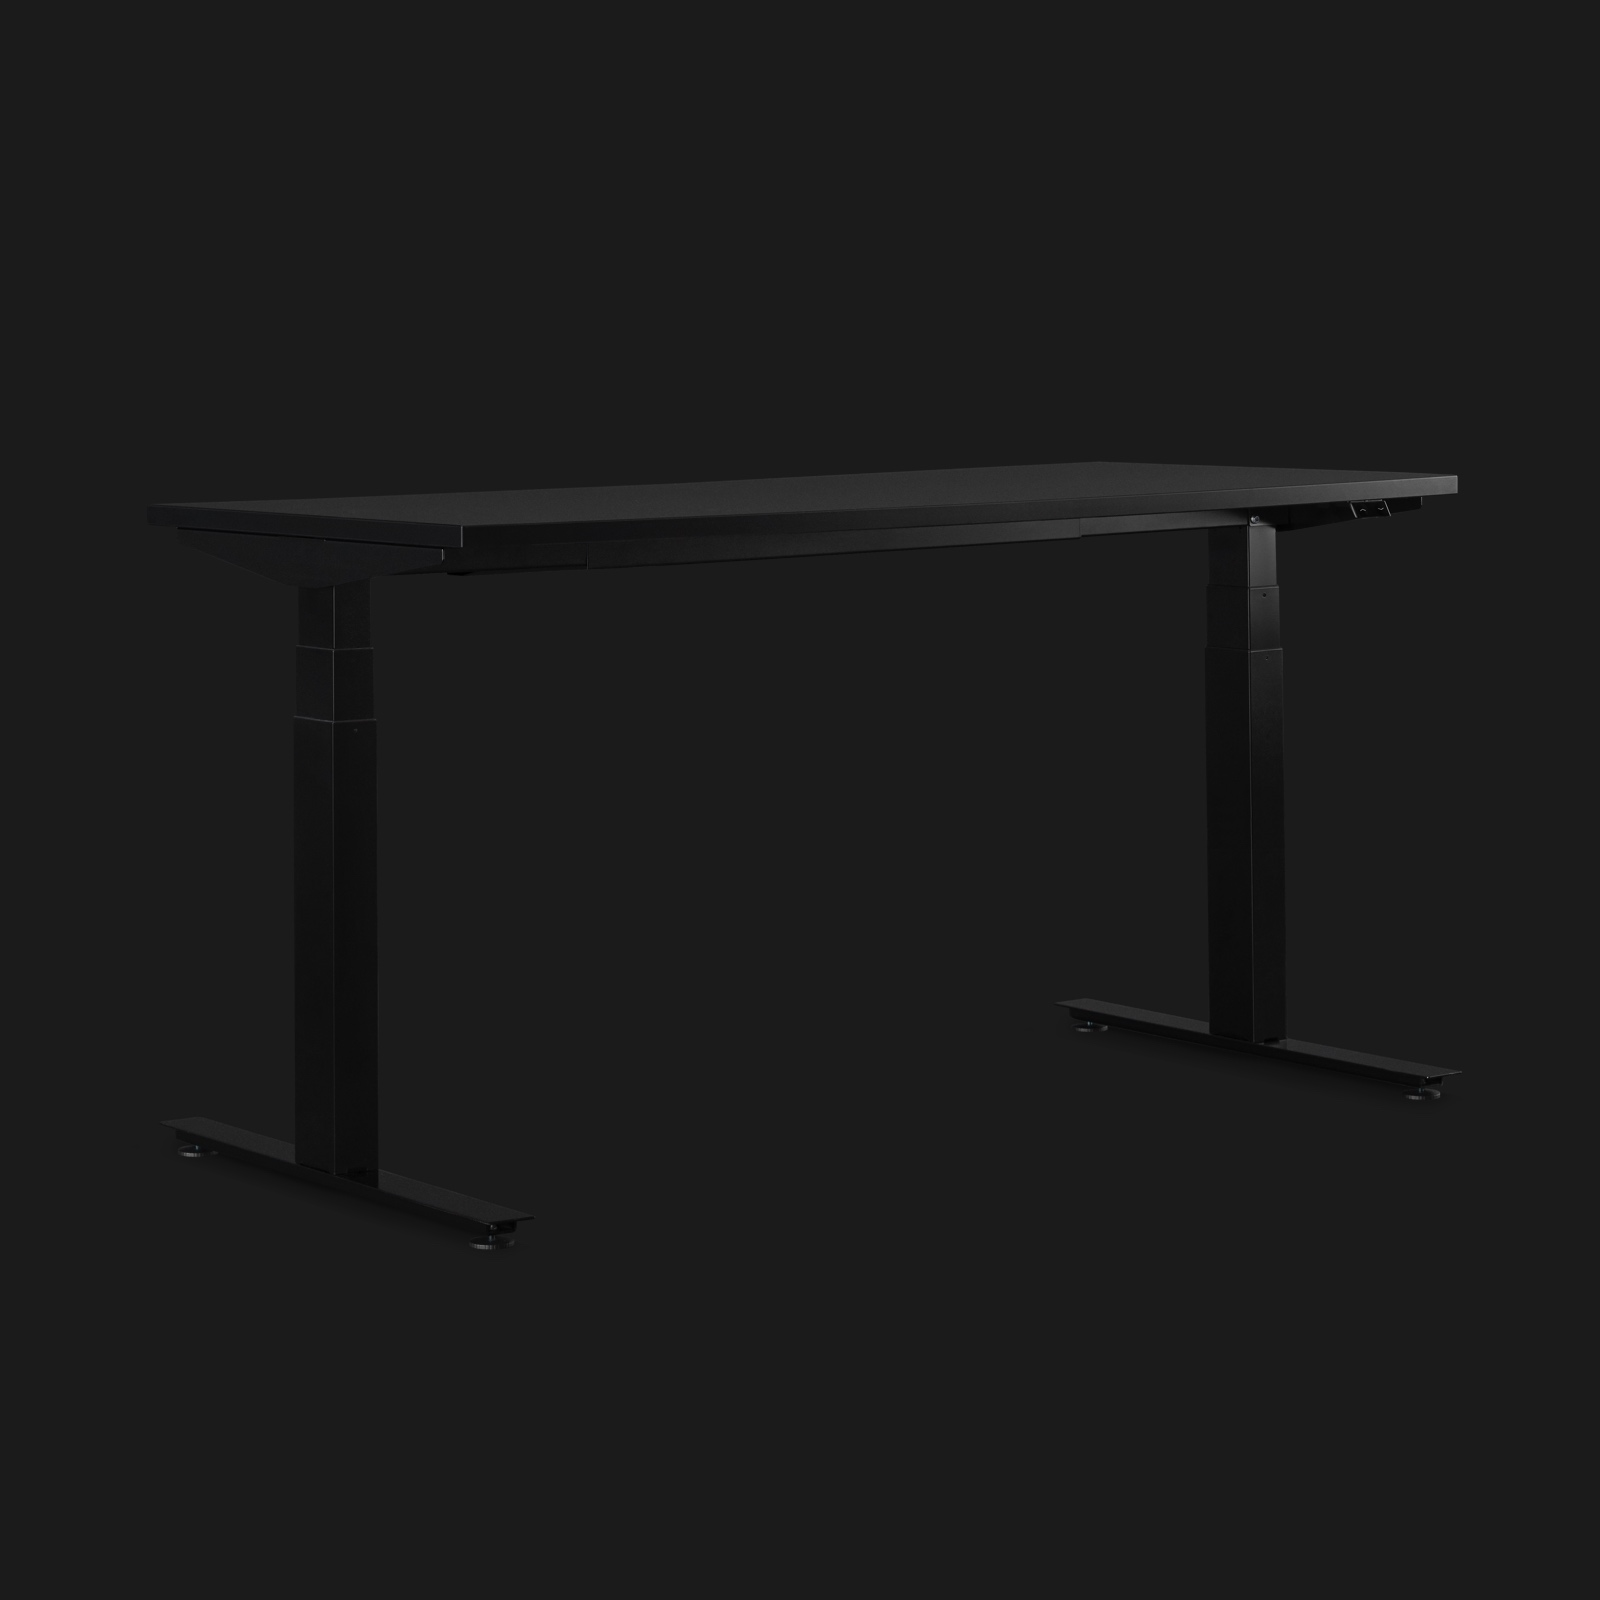 Dark grey height-adjustable Nevi Gaming Desk shown on an angle on a black background.